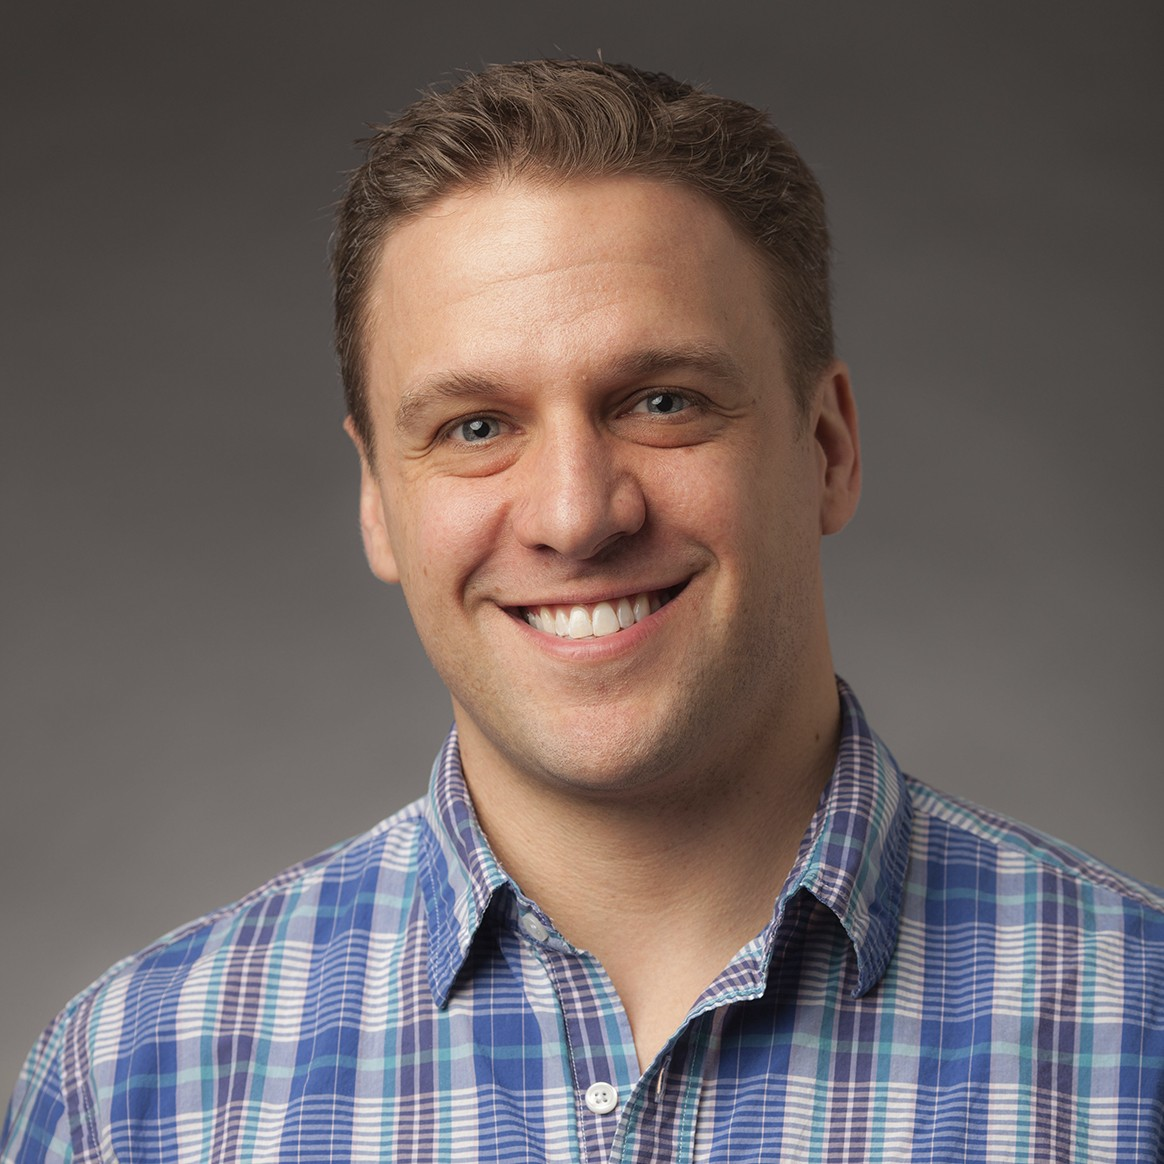 Headshot of Penn State Associate Professor of Graphic Design Ryan Russell